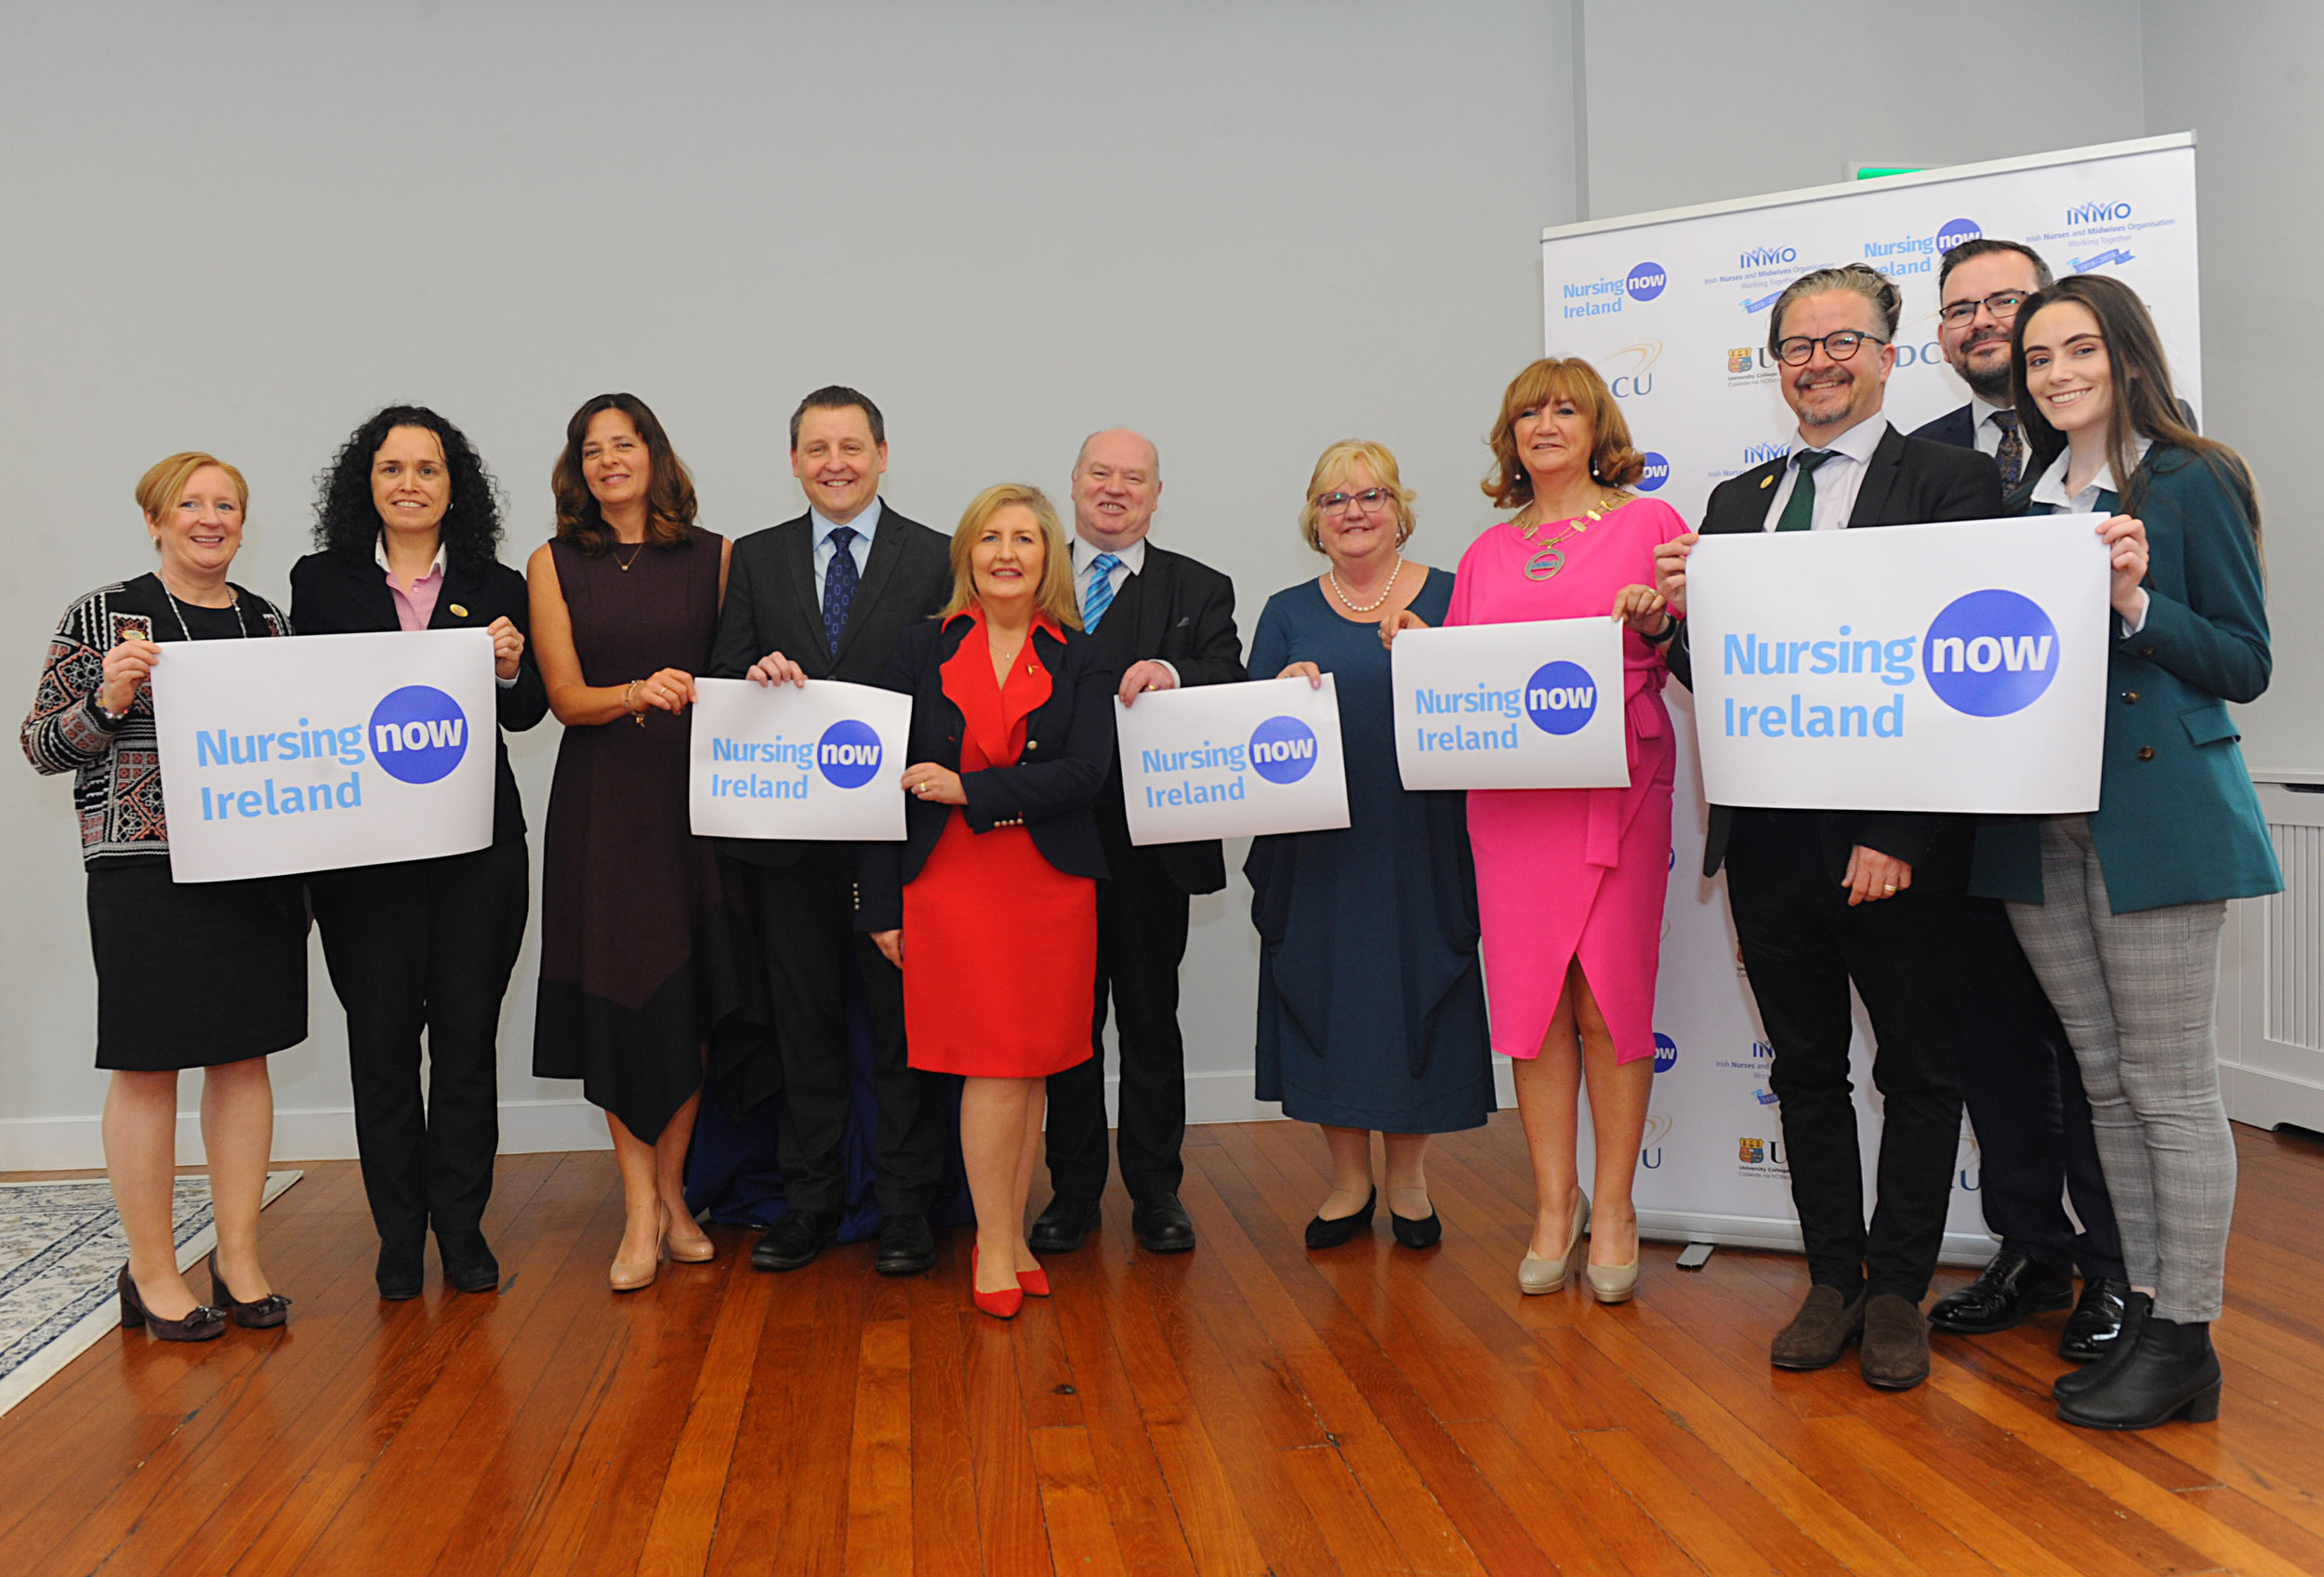 Nursing Now objectives - The objectives of the Nursing Now Ireland campaign set out a pathway to achieve the vision of the campaign - to raise the profile and highlight the contribution of nurses and midwives.